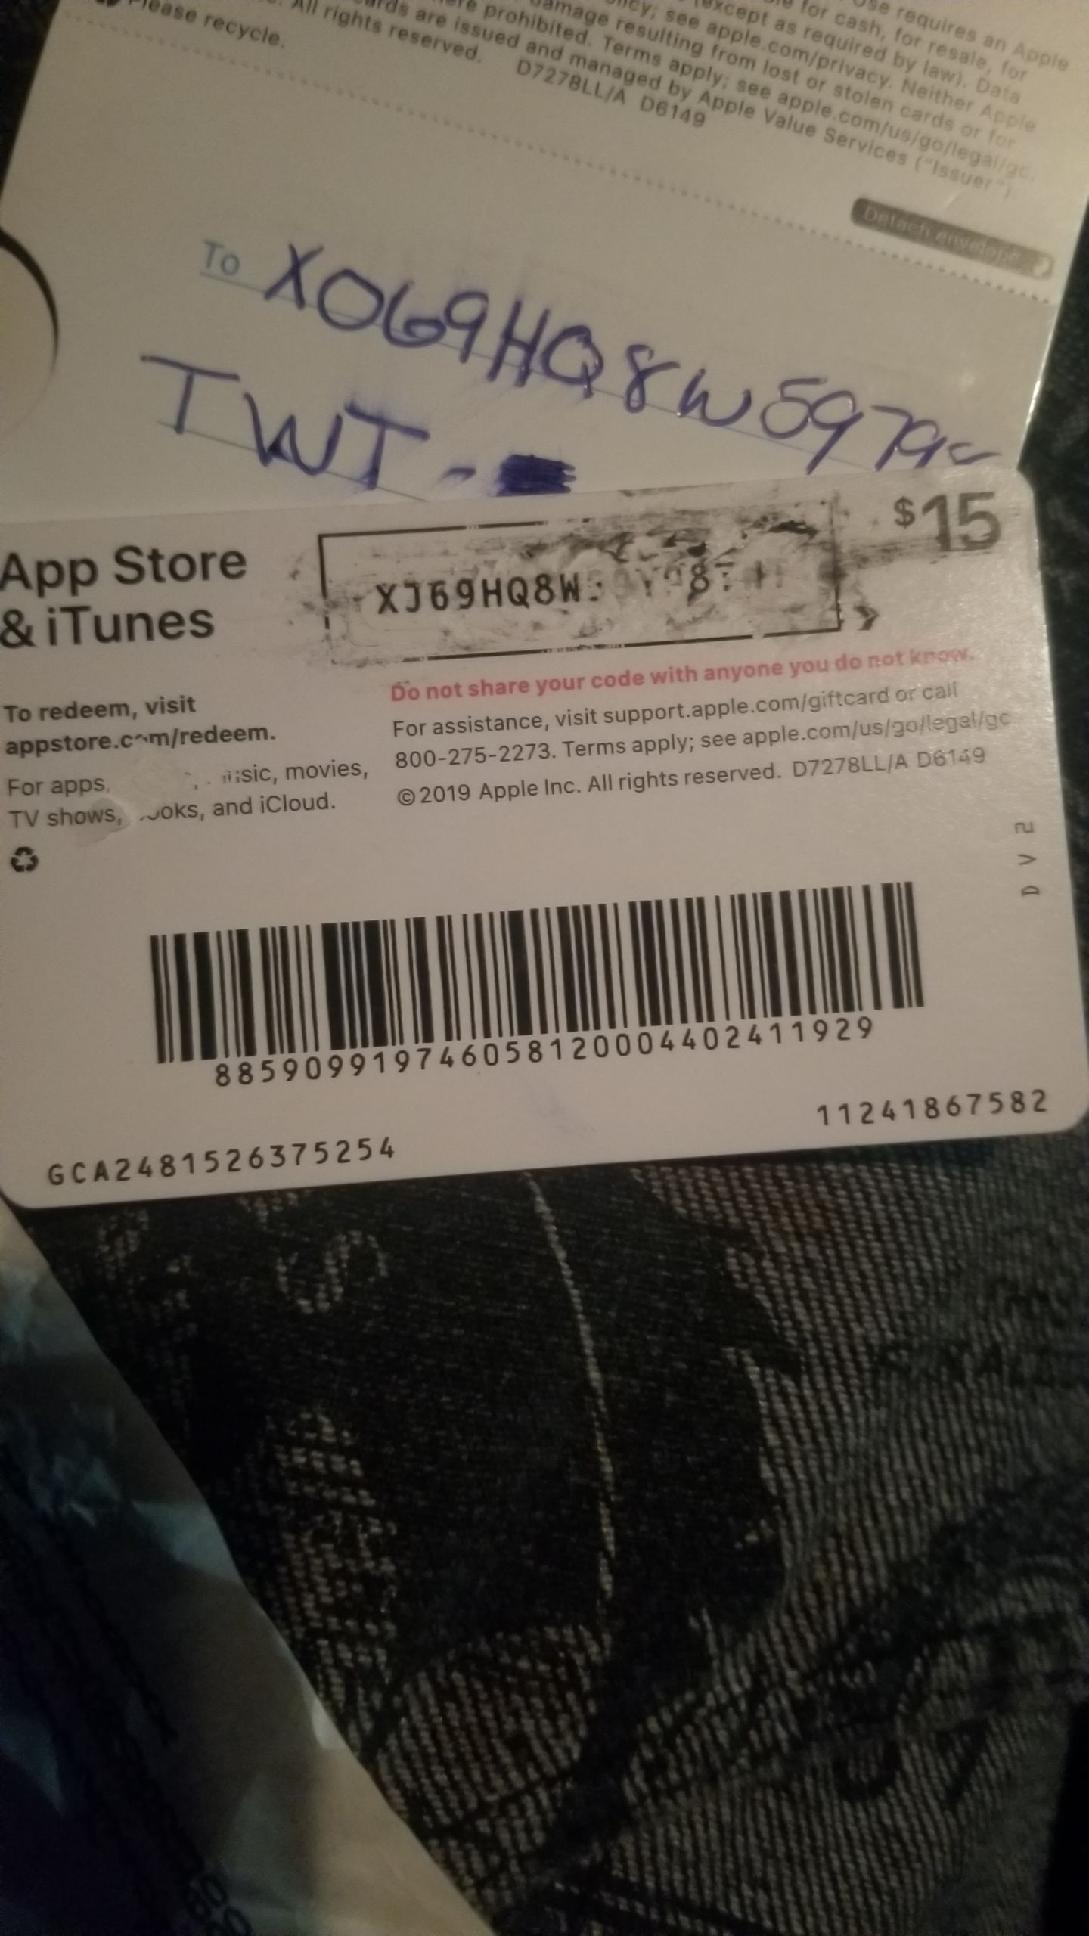 My card redemption code was scratched off - Apple Community